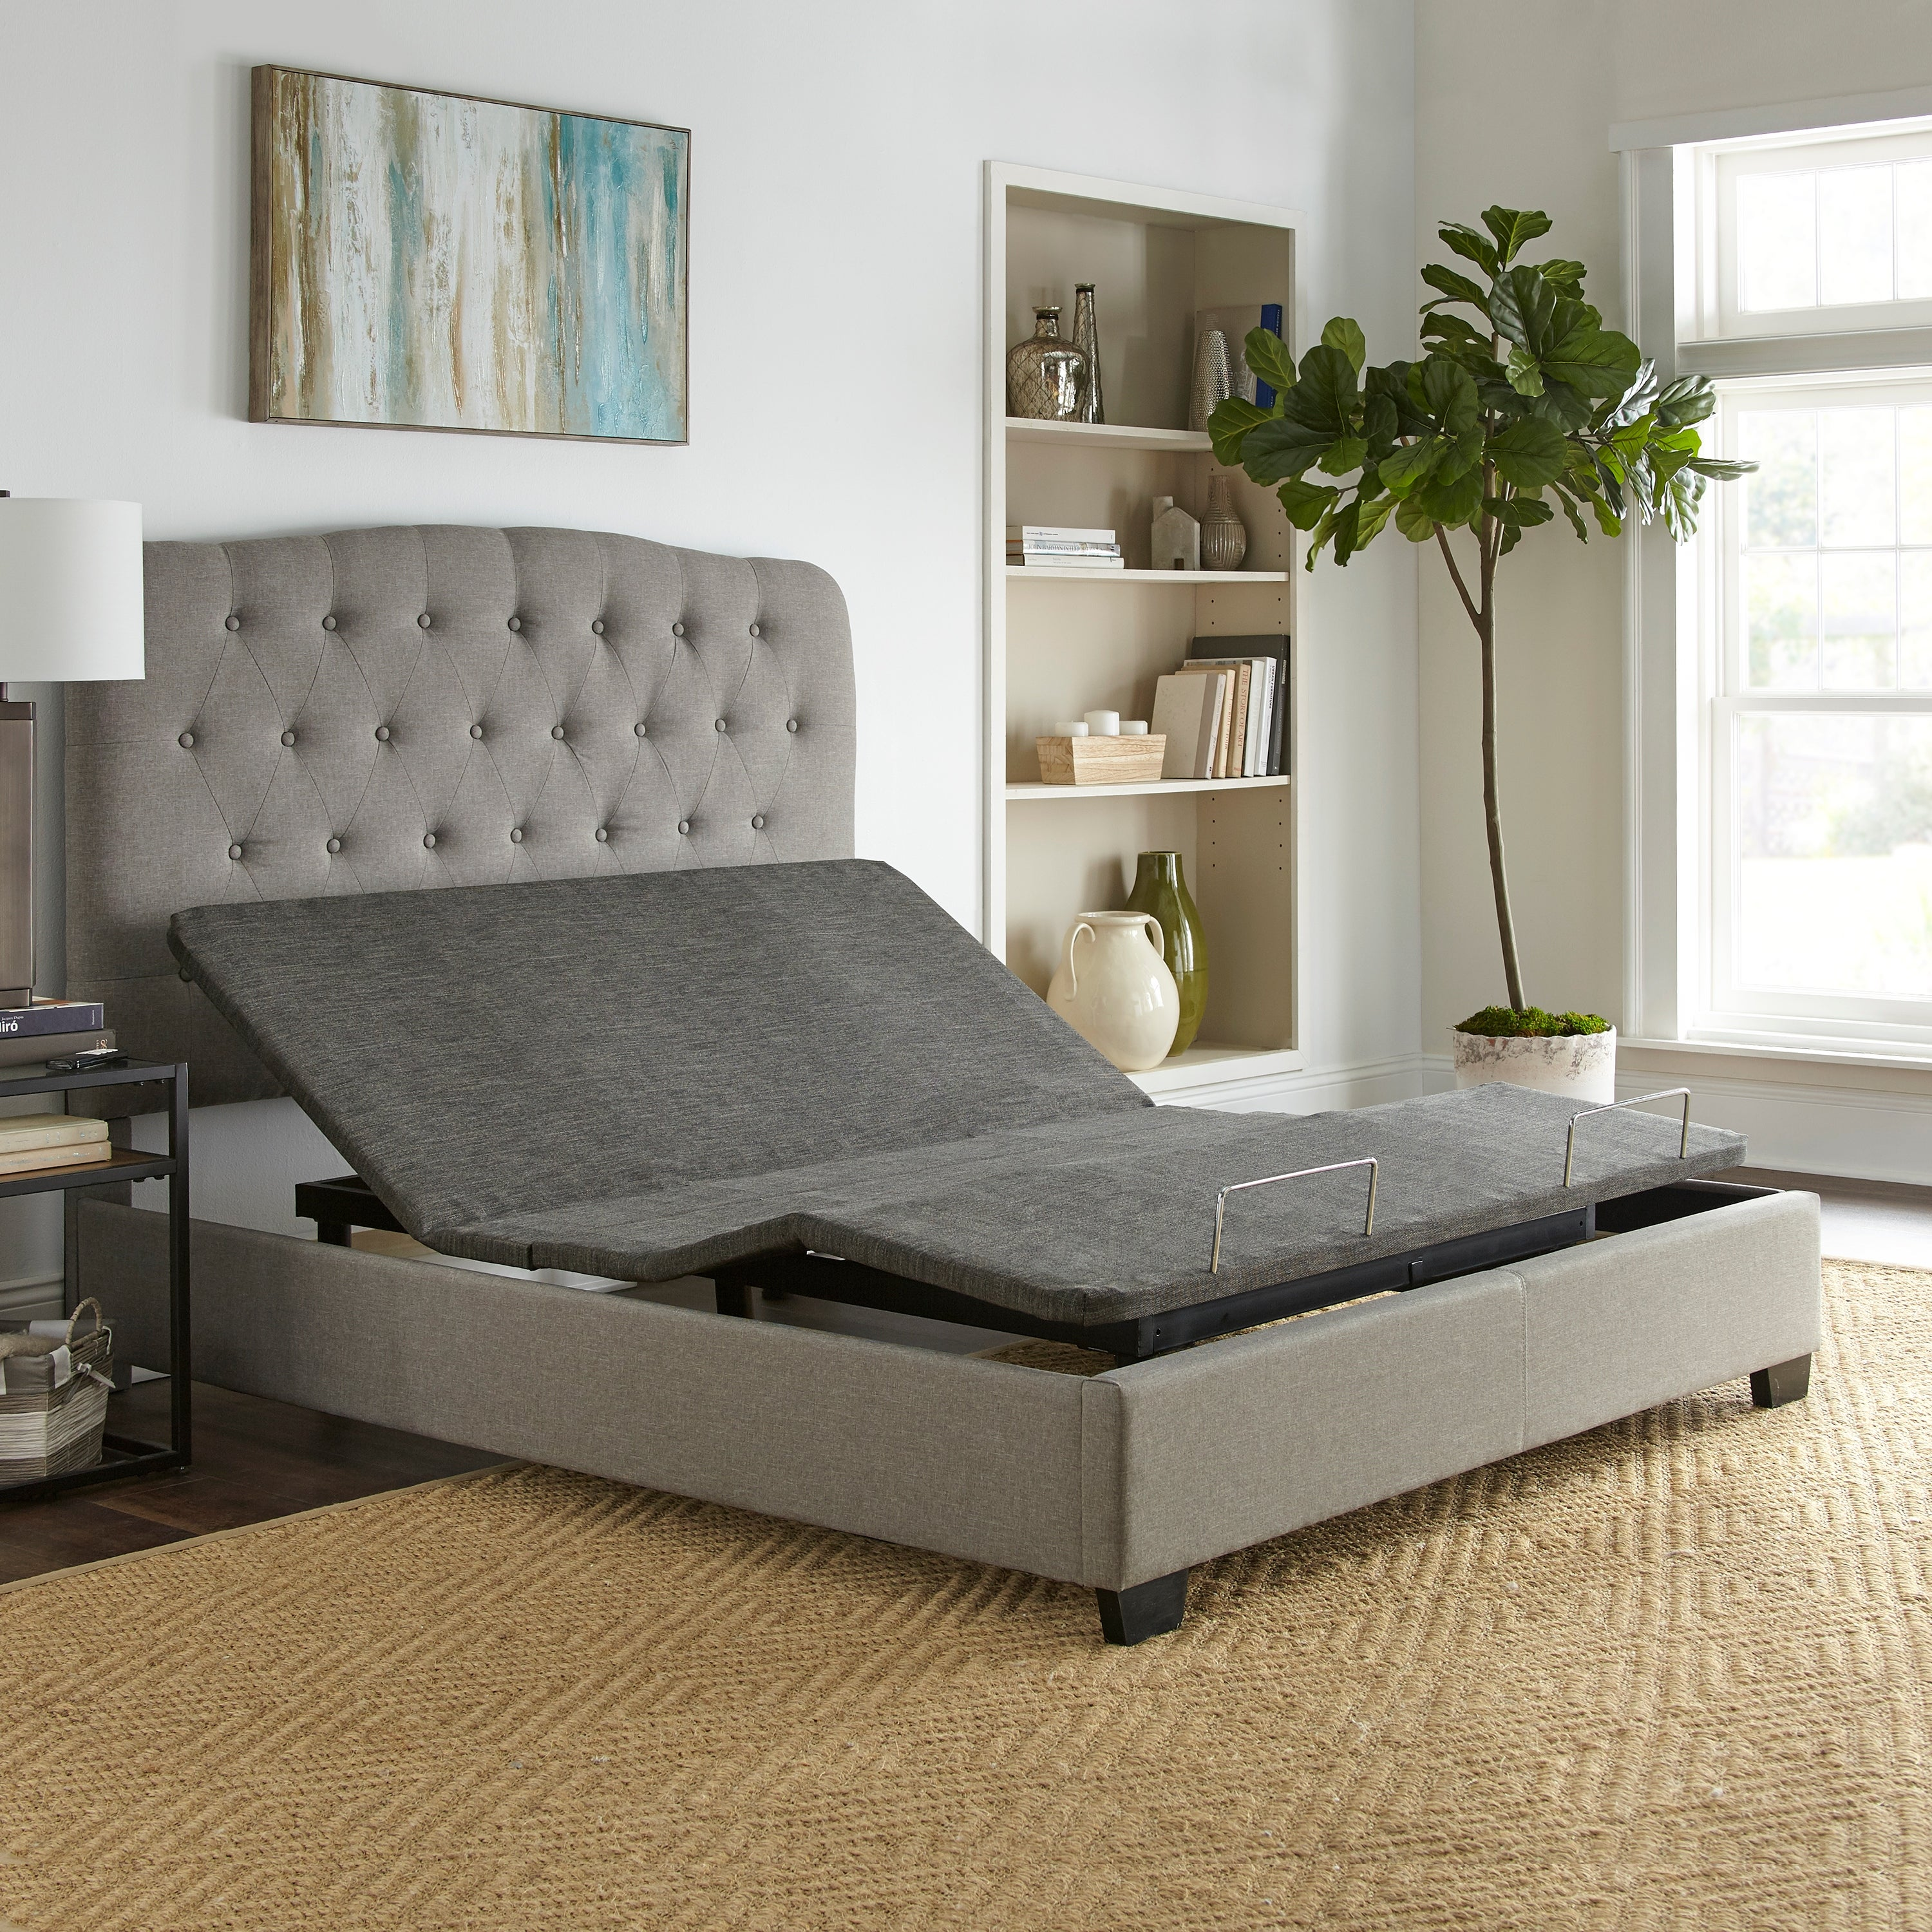 Sleep Sync Adjustable Bed Base Upholstered Queen Wireless Remote On Sale Overstock 27123430